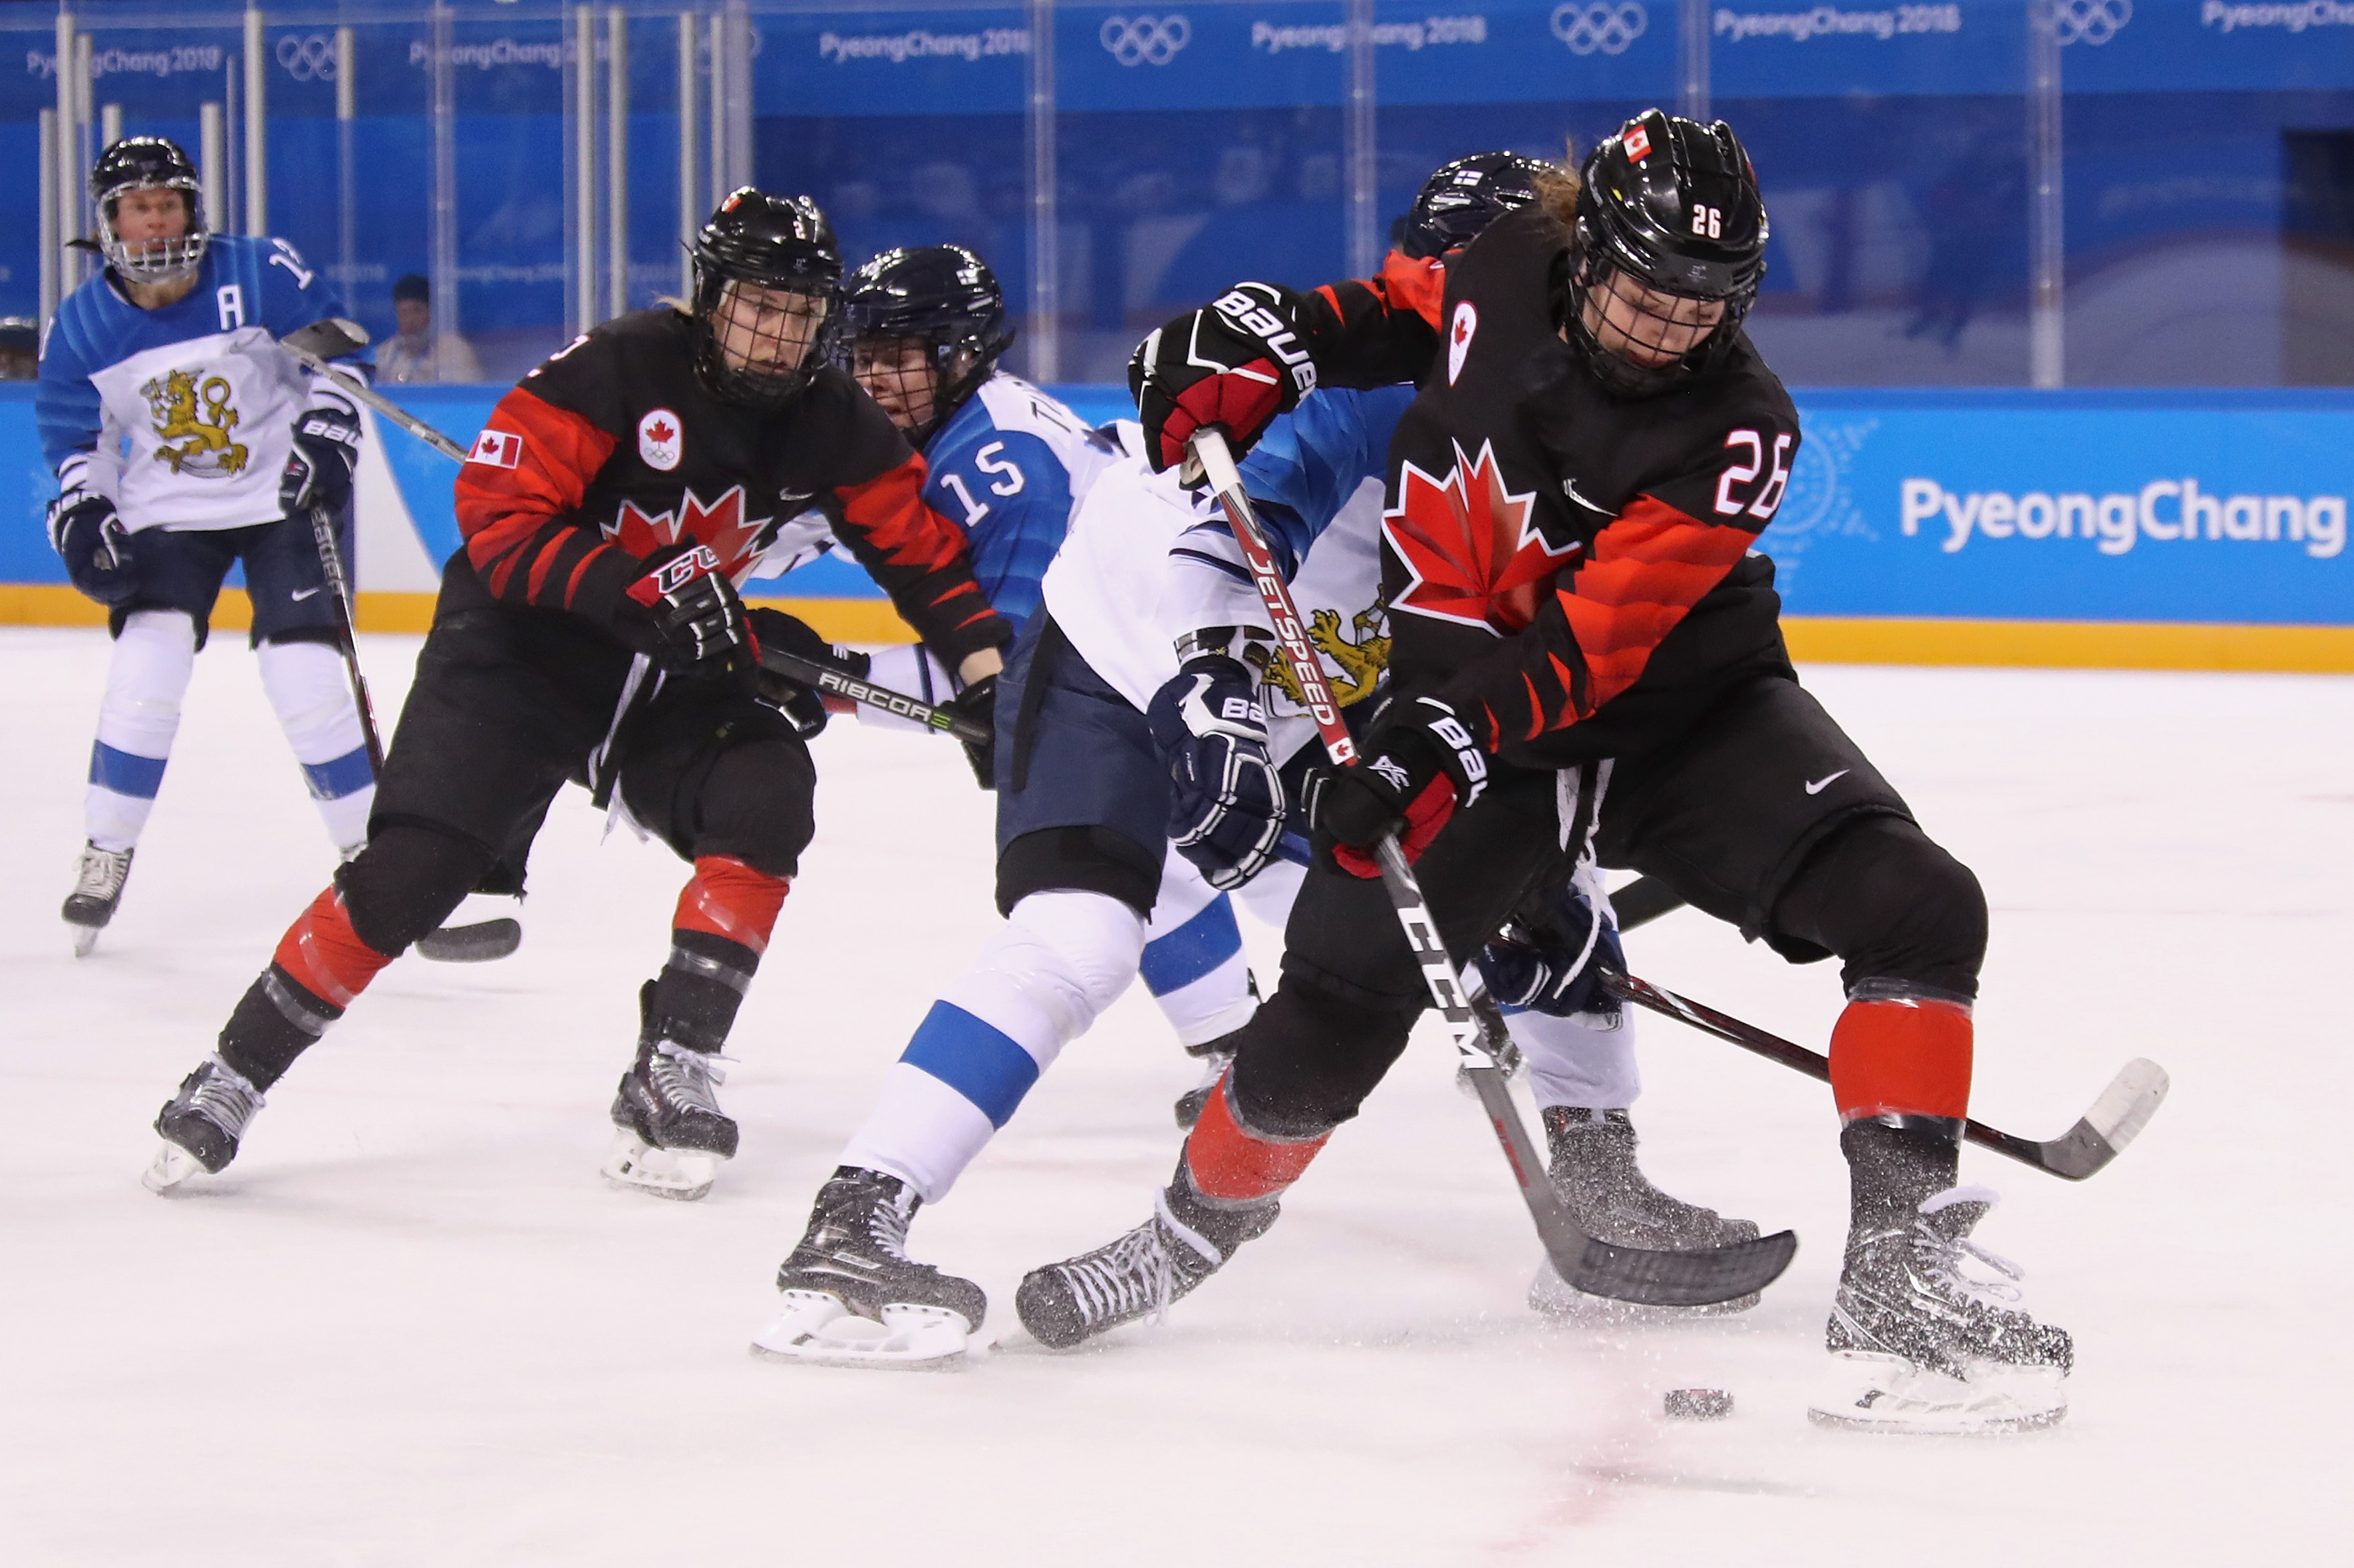 Emily Clark #26 of Canada battles for the puck against Finland in the second period during the Women's Ice Hockey Preliminary Round